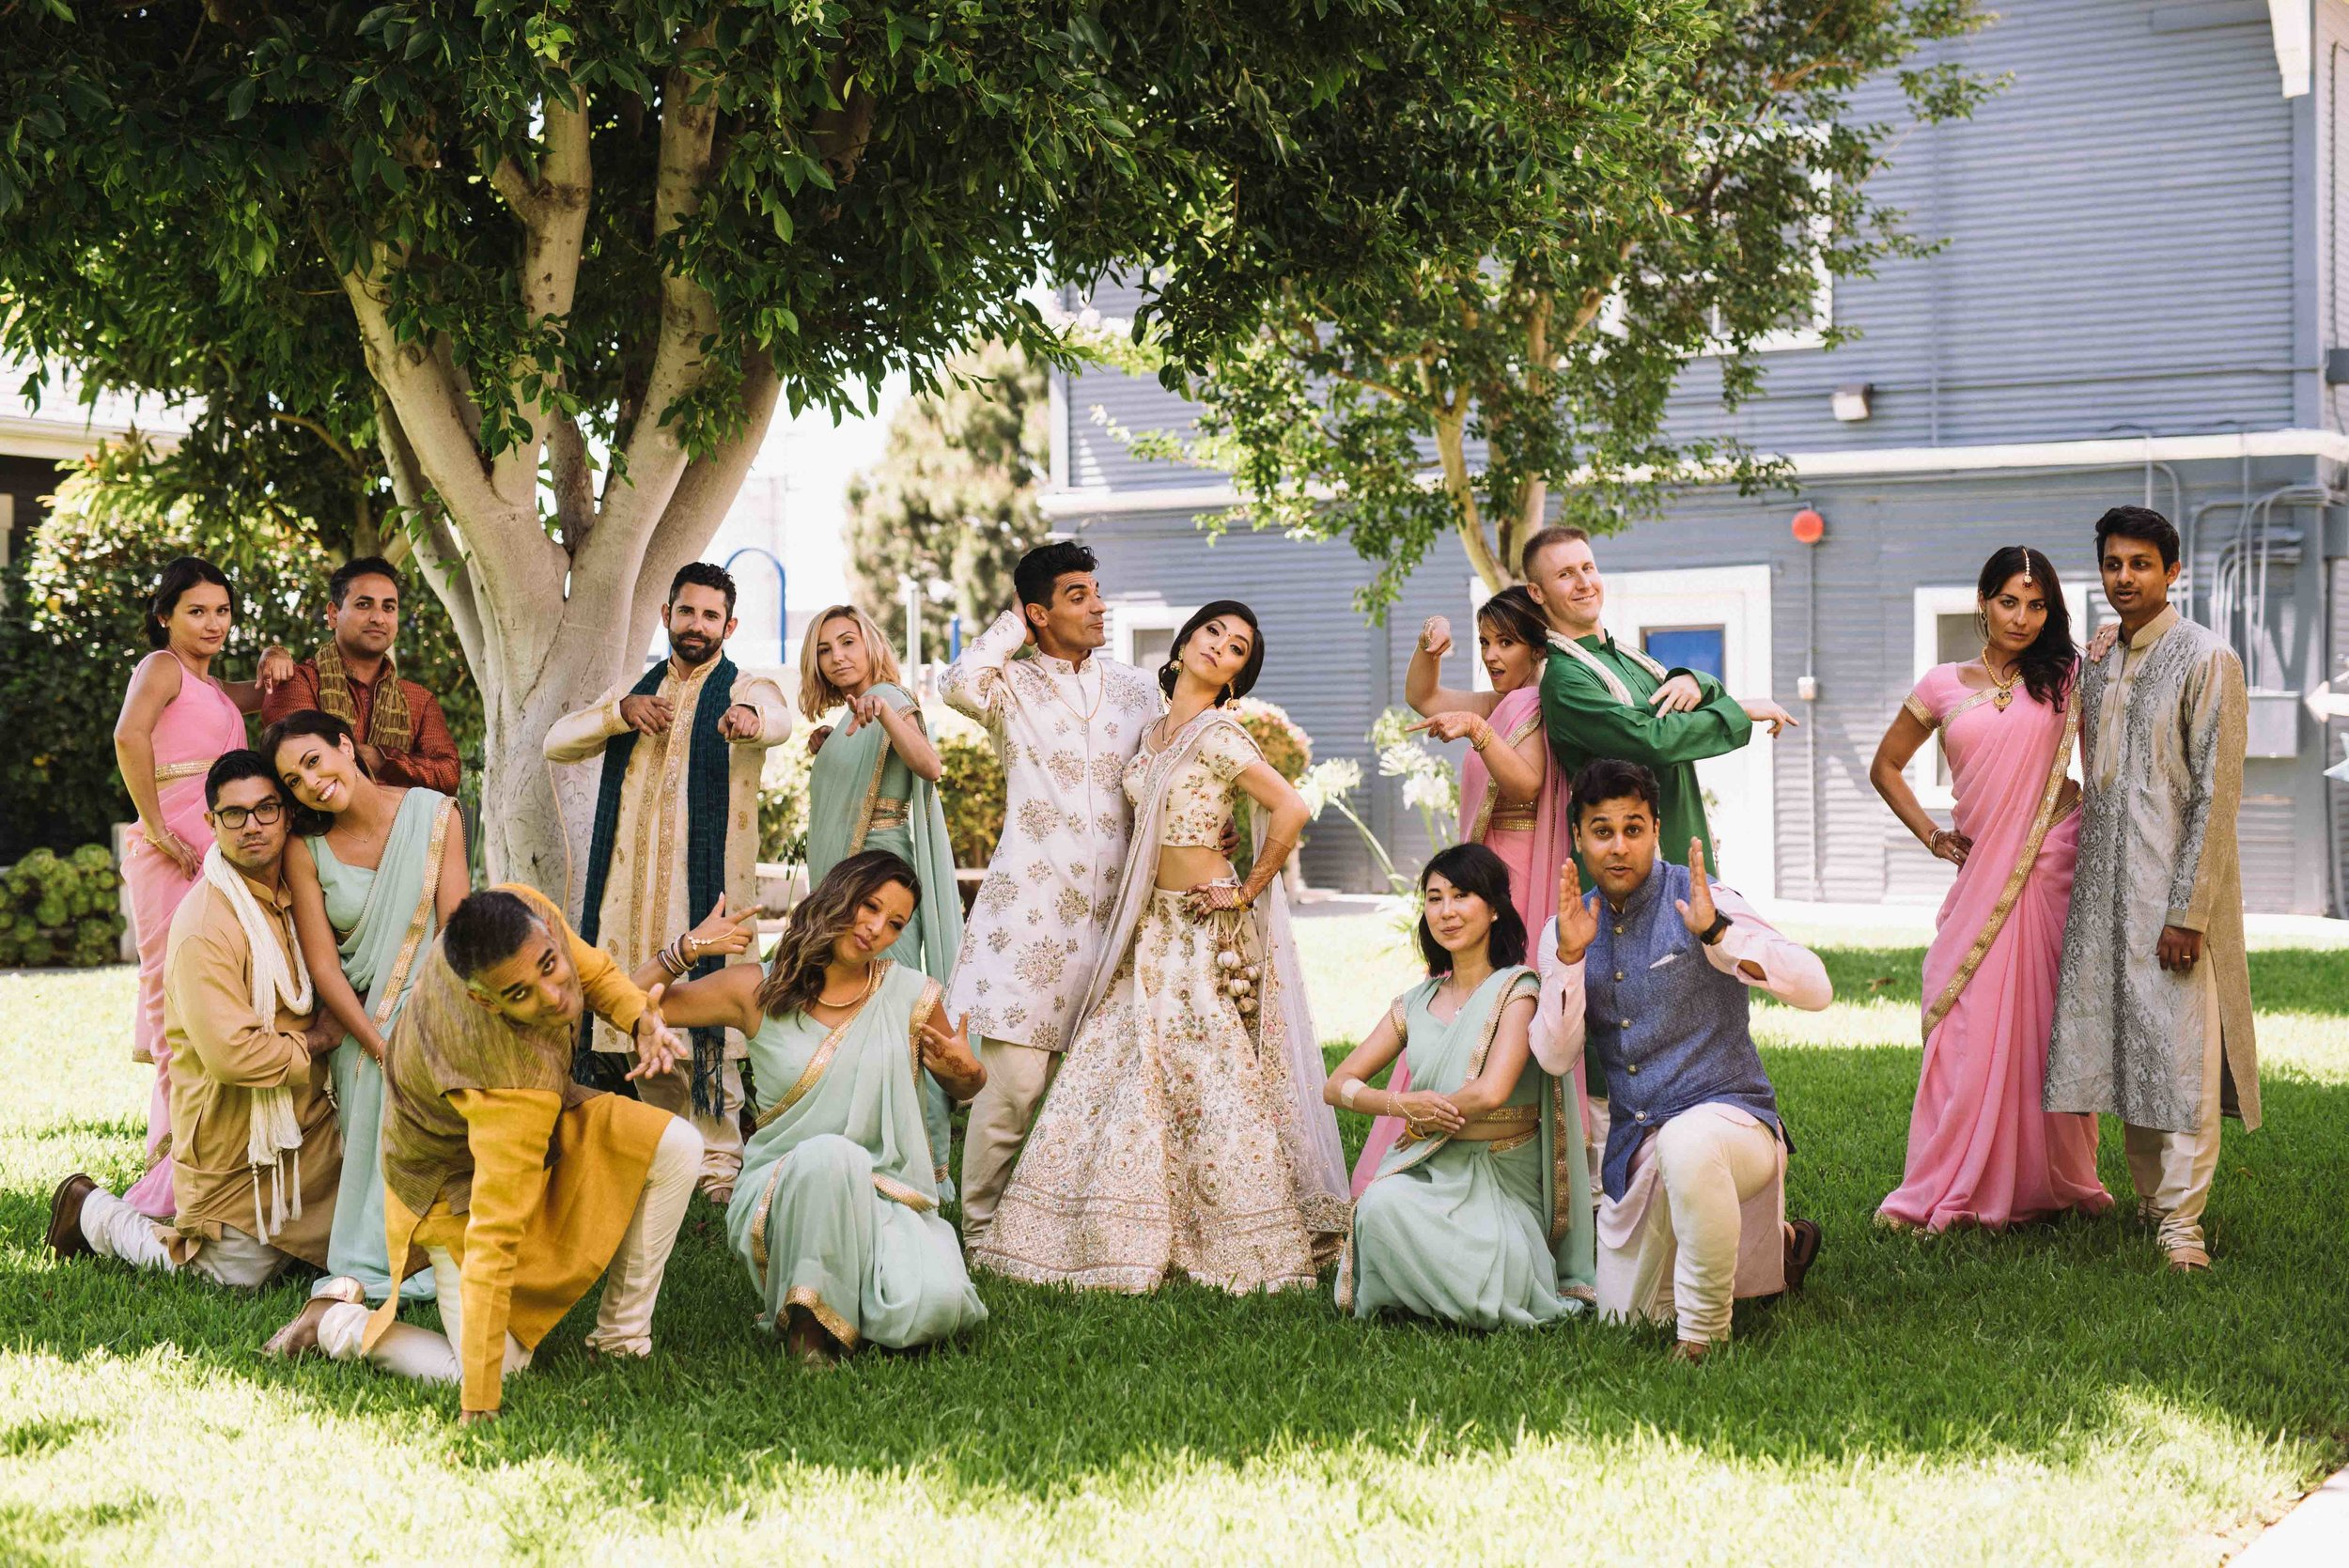 LosAngeles_Indian_Wedding_Photographer_AS_121.jpg